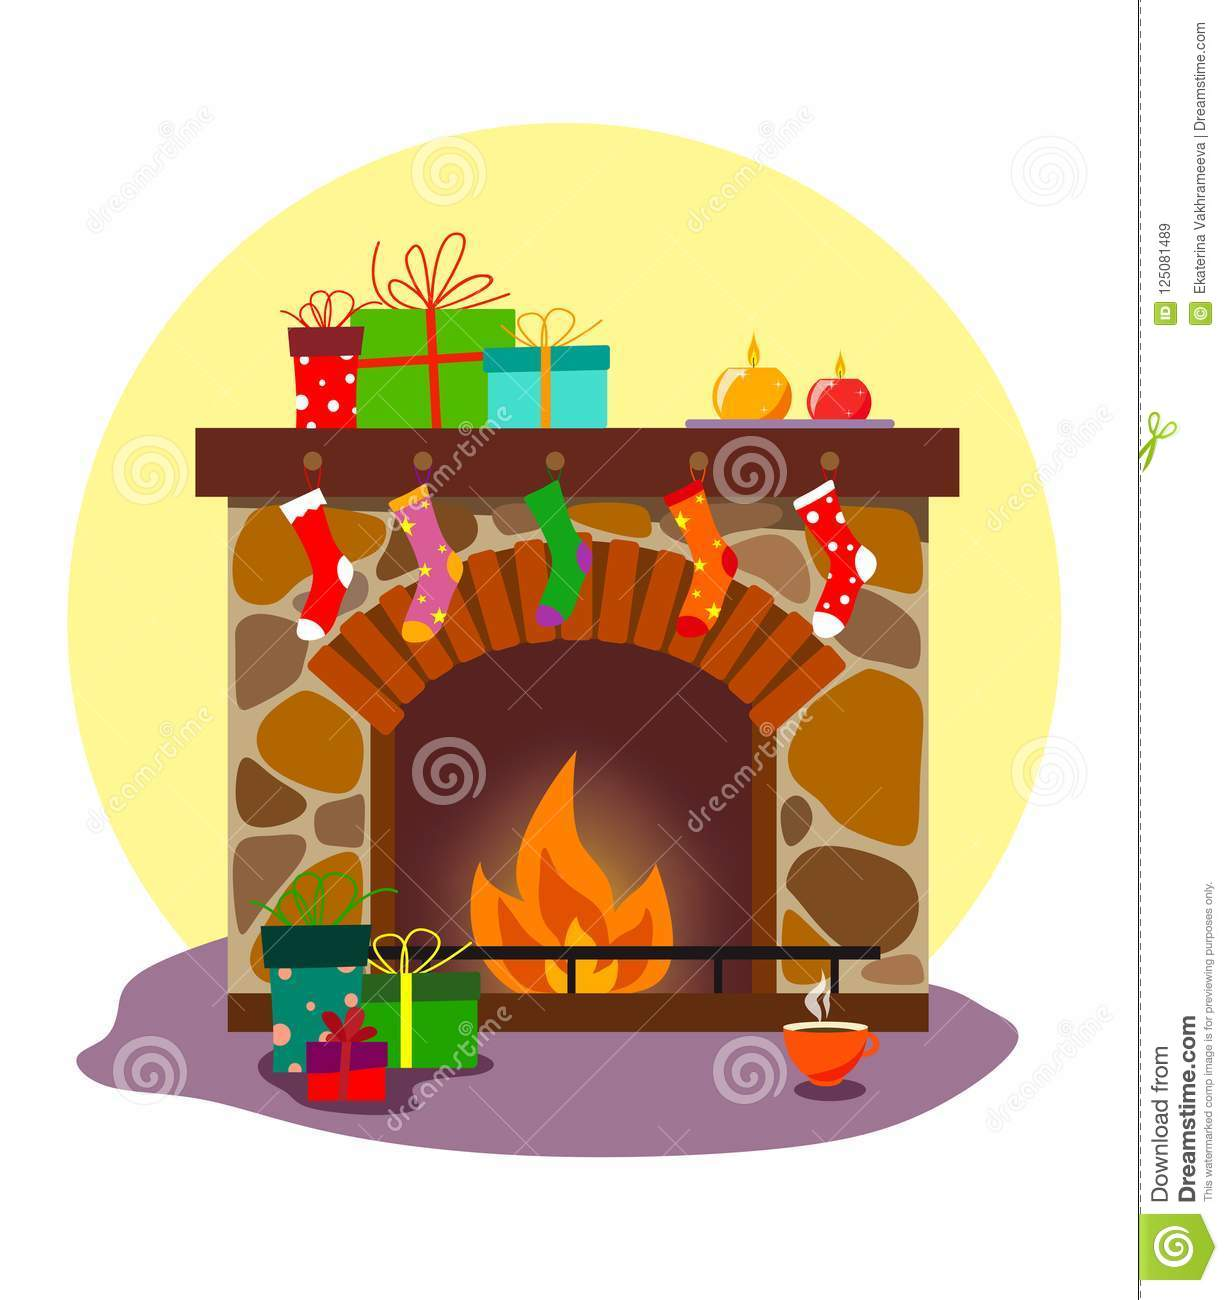 A Cozy Fireplace With Socks And Gifts For Christmas Or The New Year ...